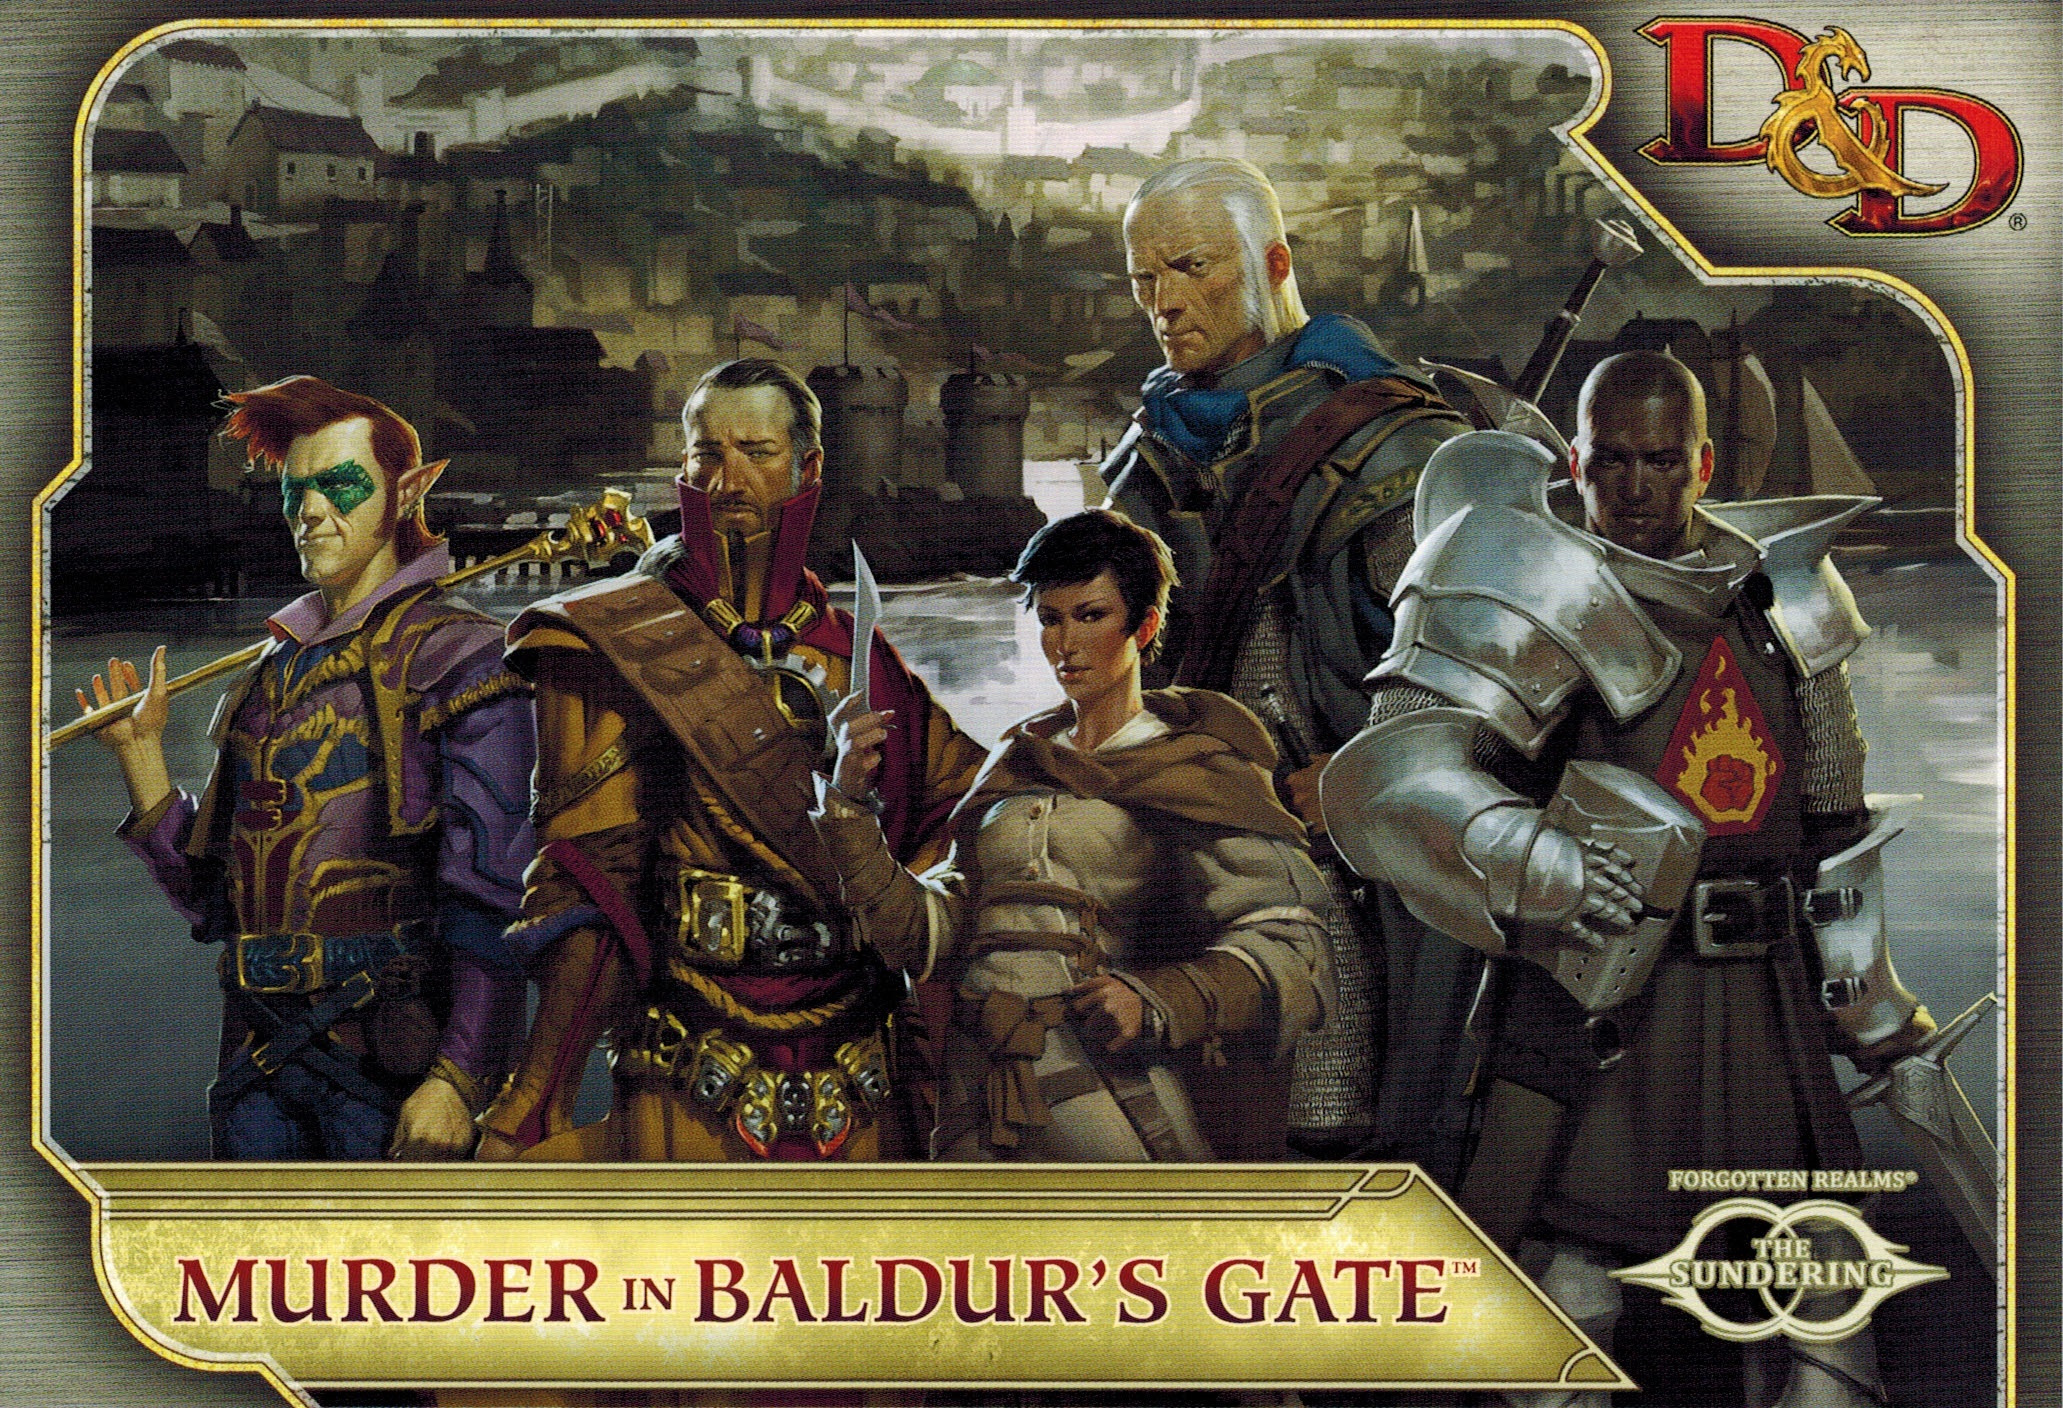 Murder-in-Baldurs-Gate.jpg